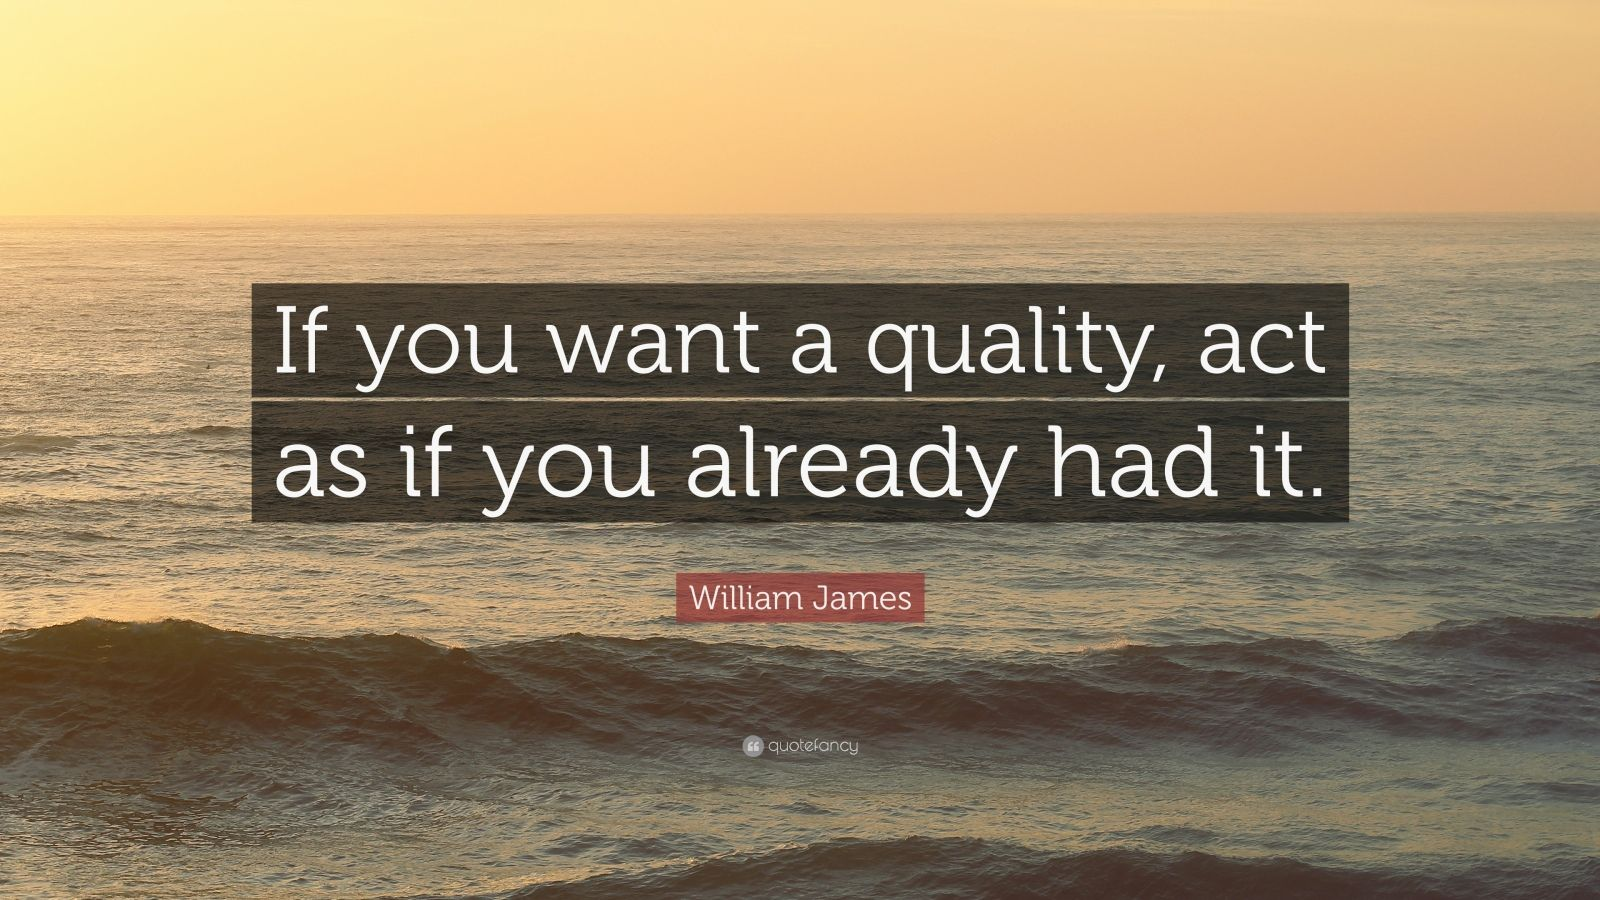 """William James Quote: """"If you want a quality, act as if you already had it."""""""